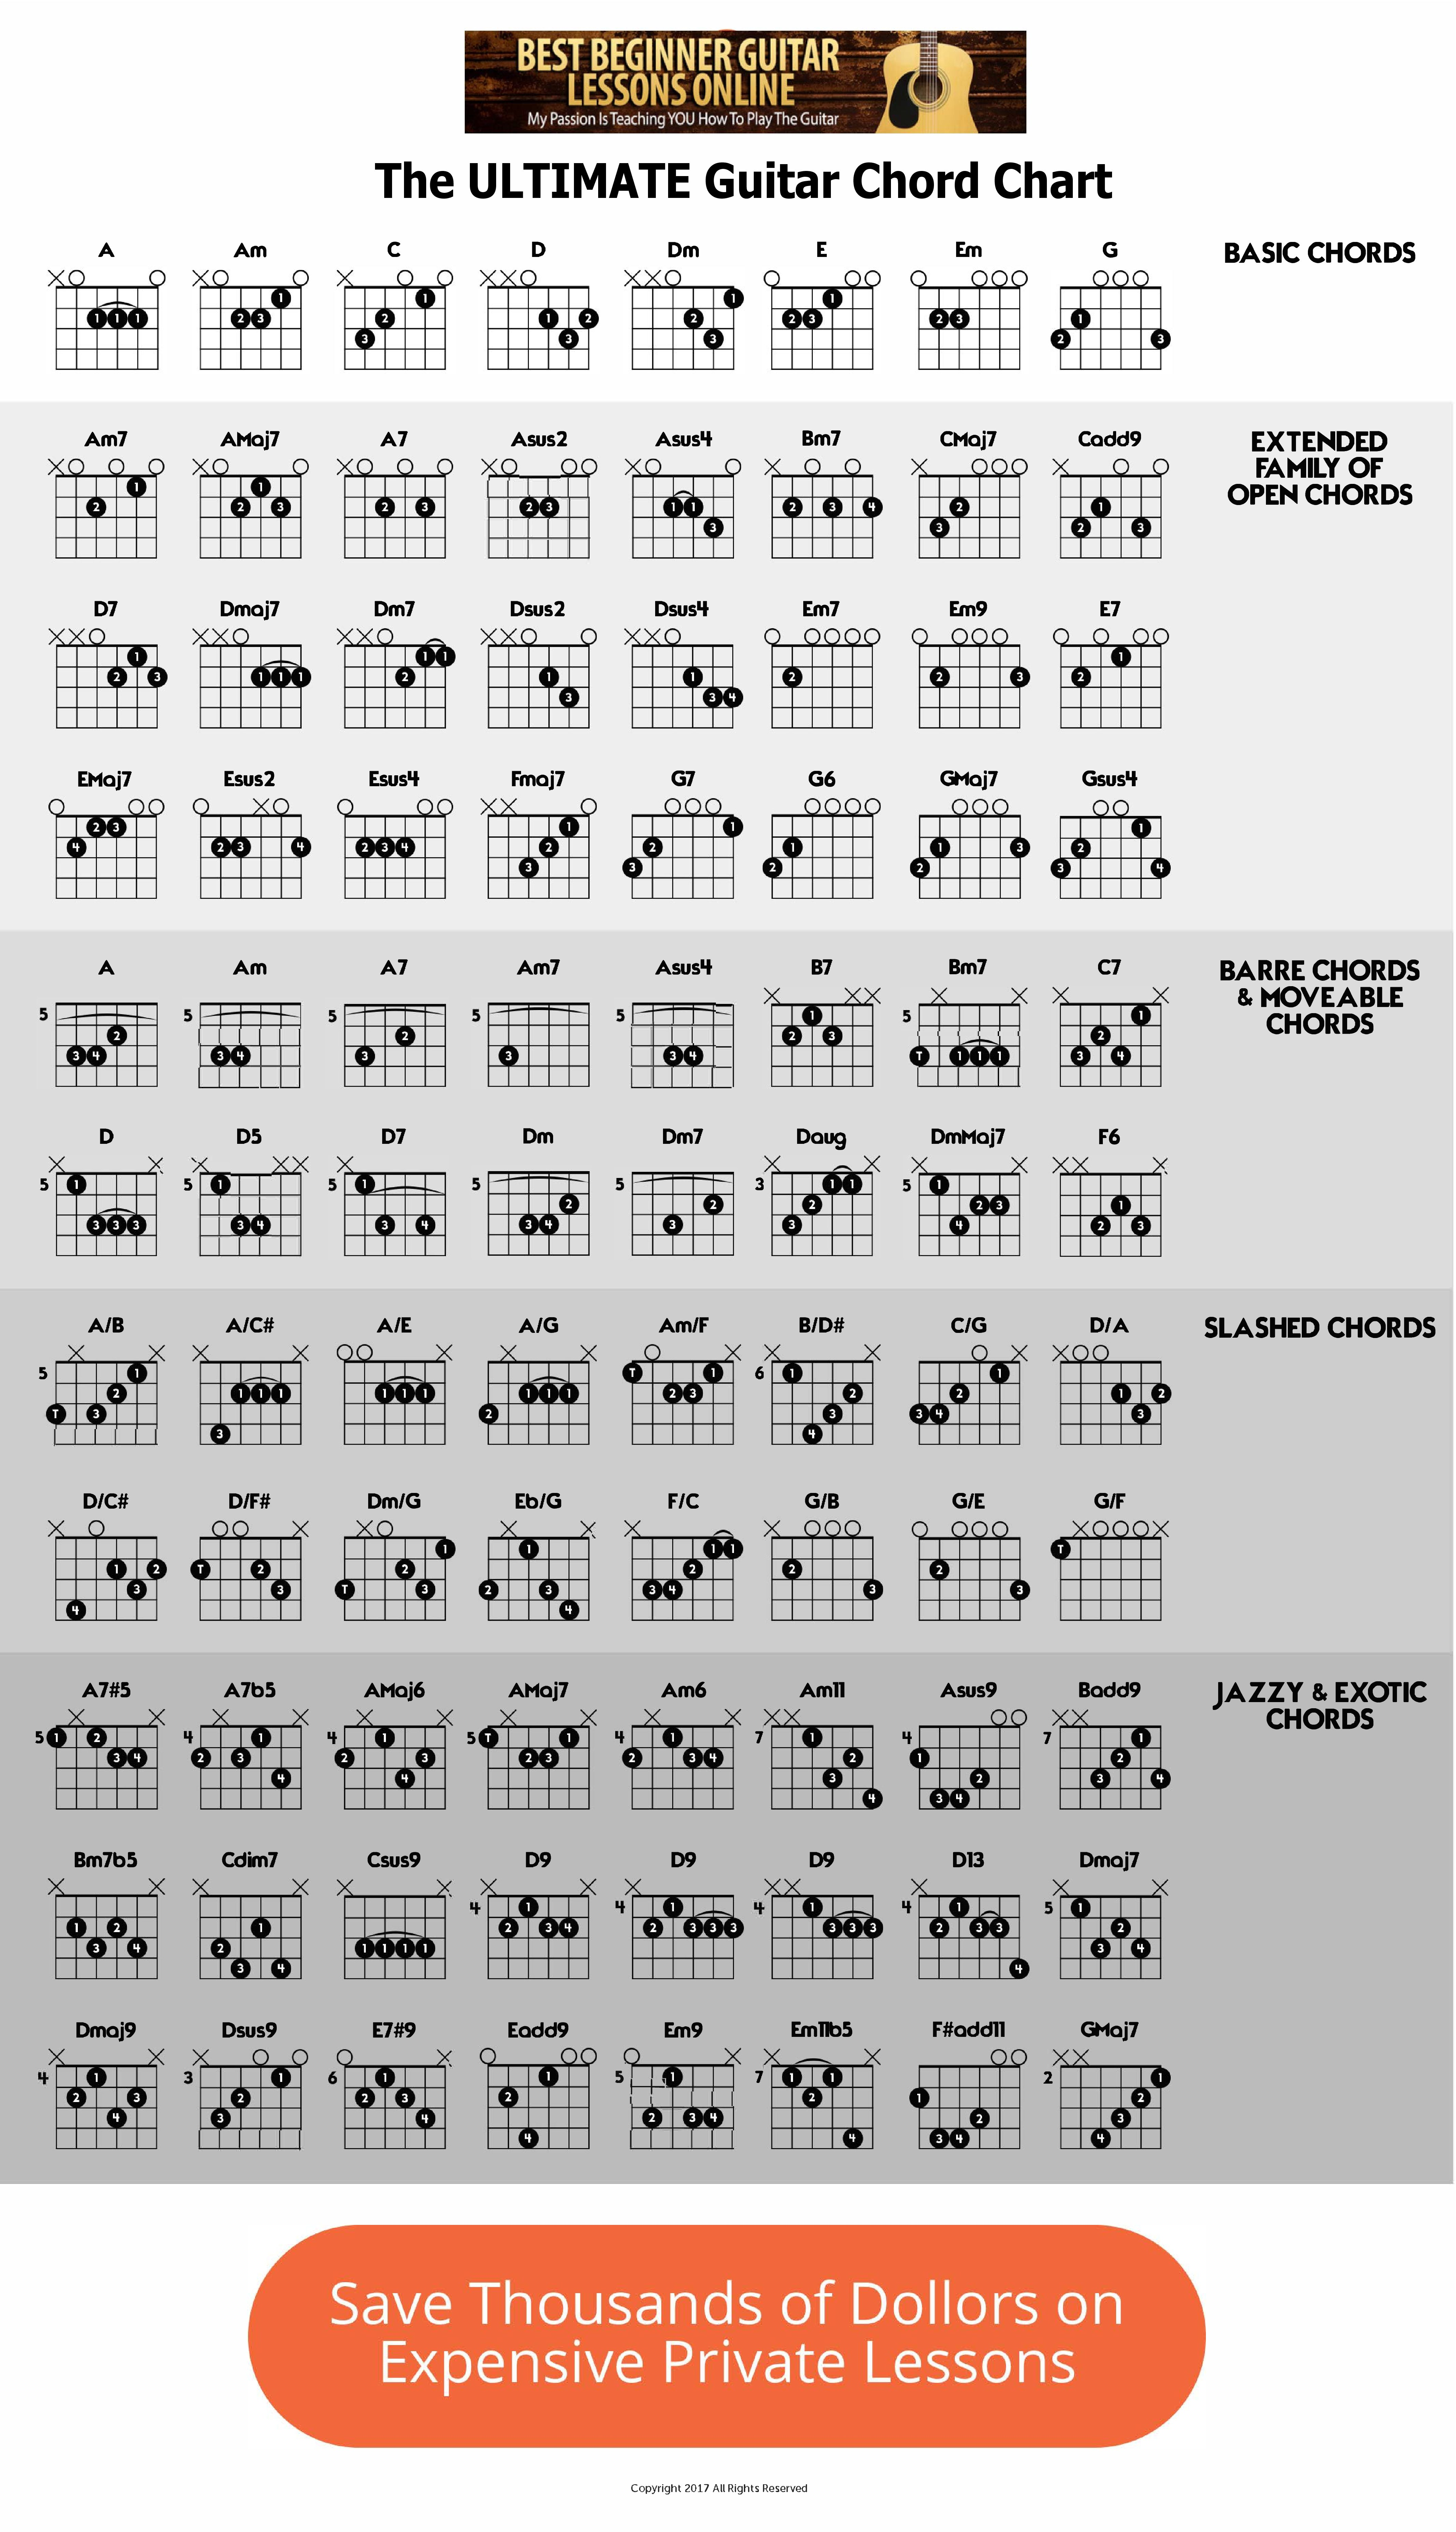 Free The Ultimate Guitar Chord Chart Best Beginner Guitar